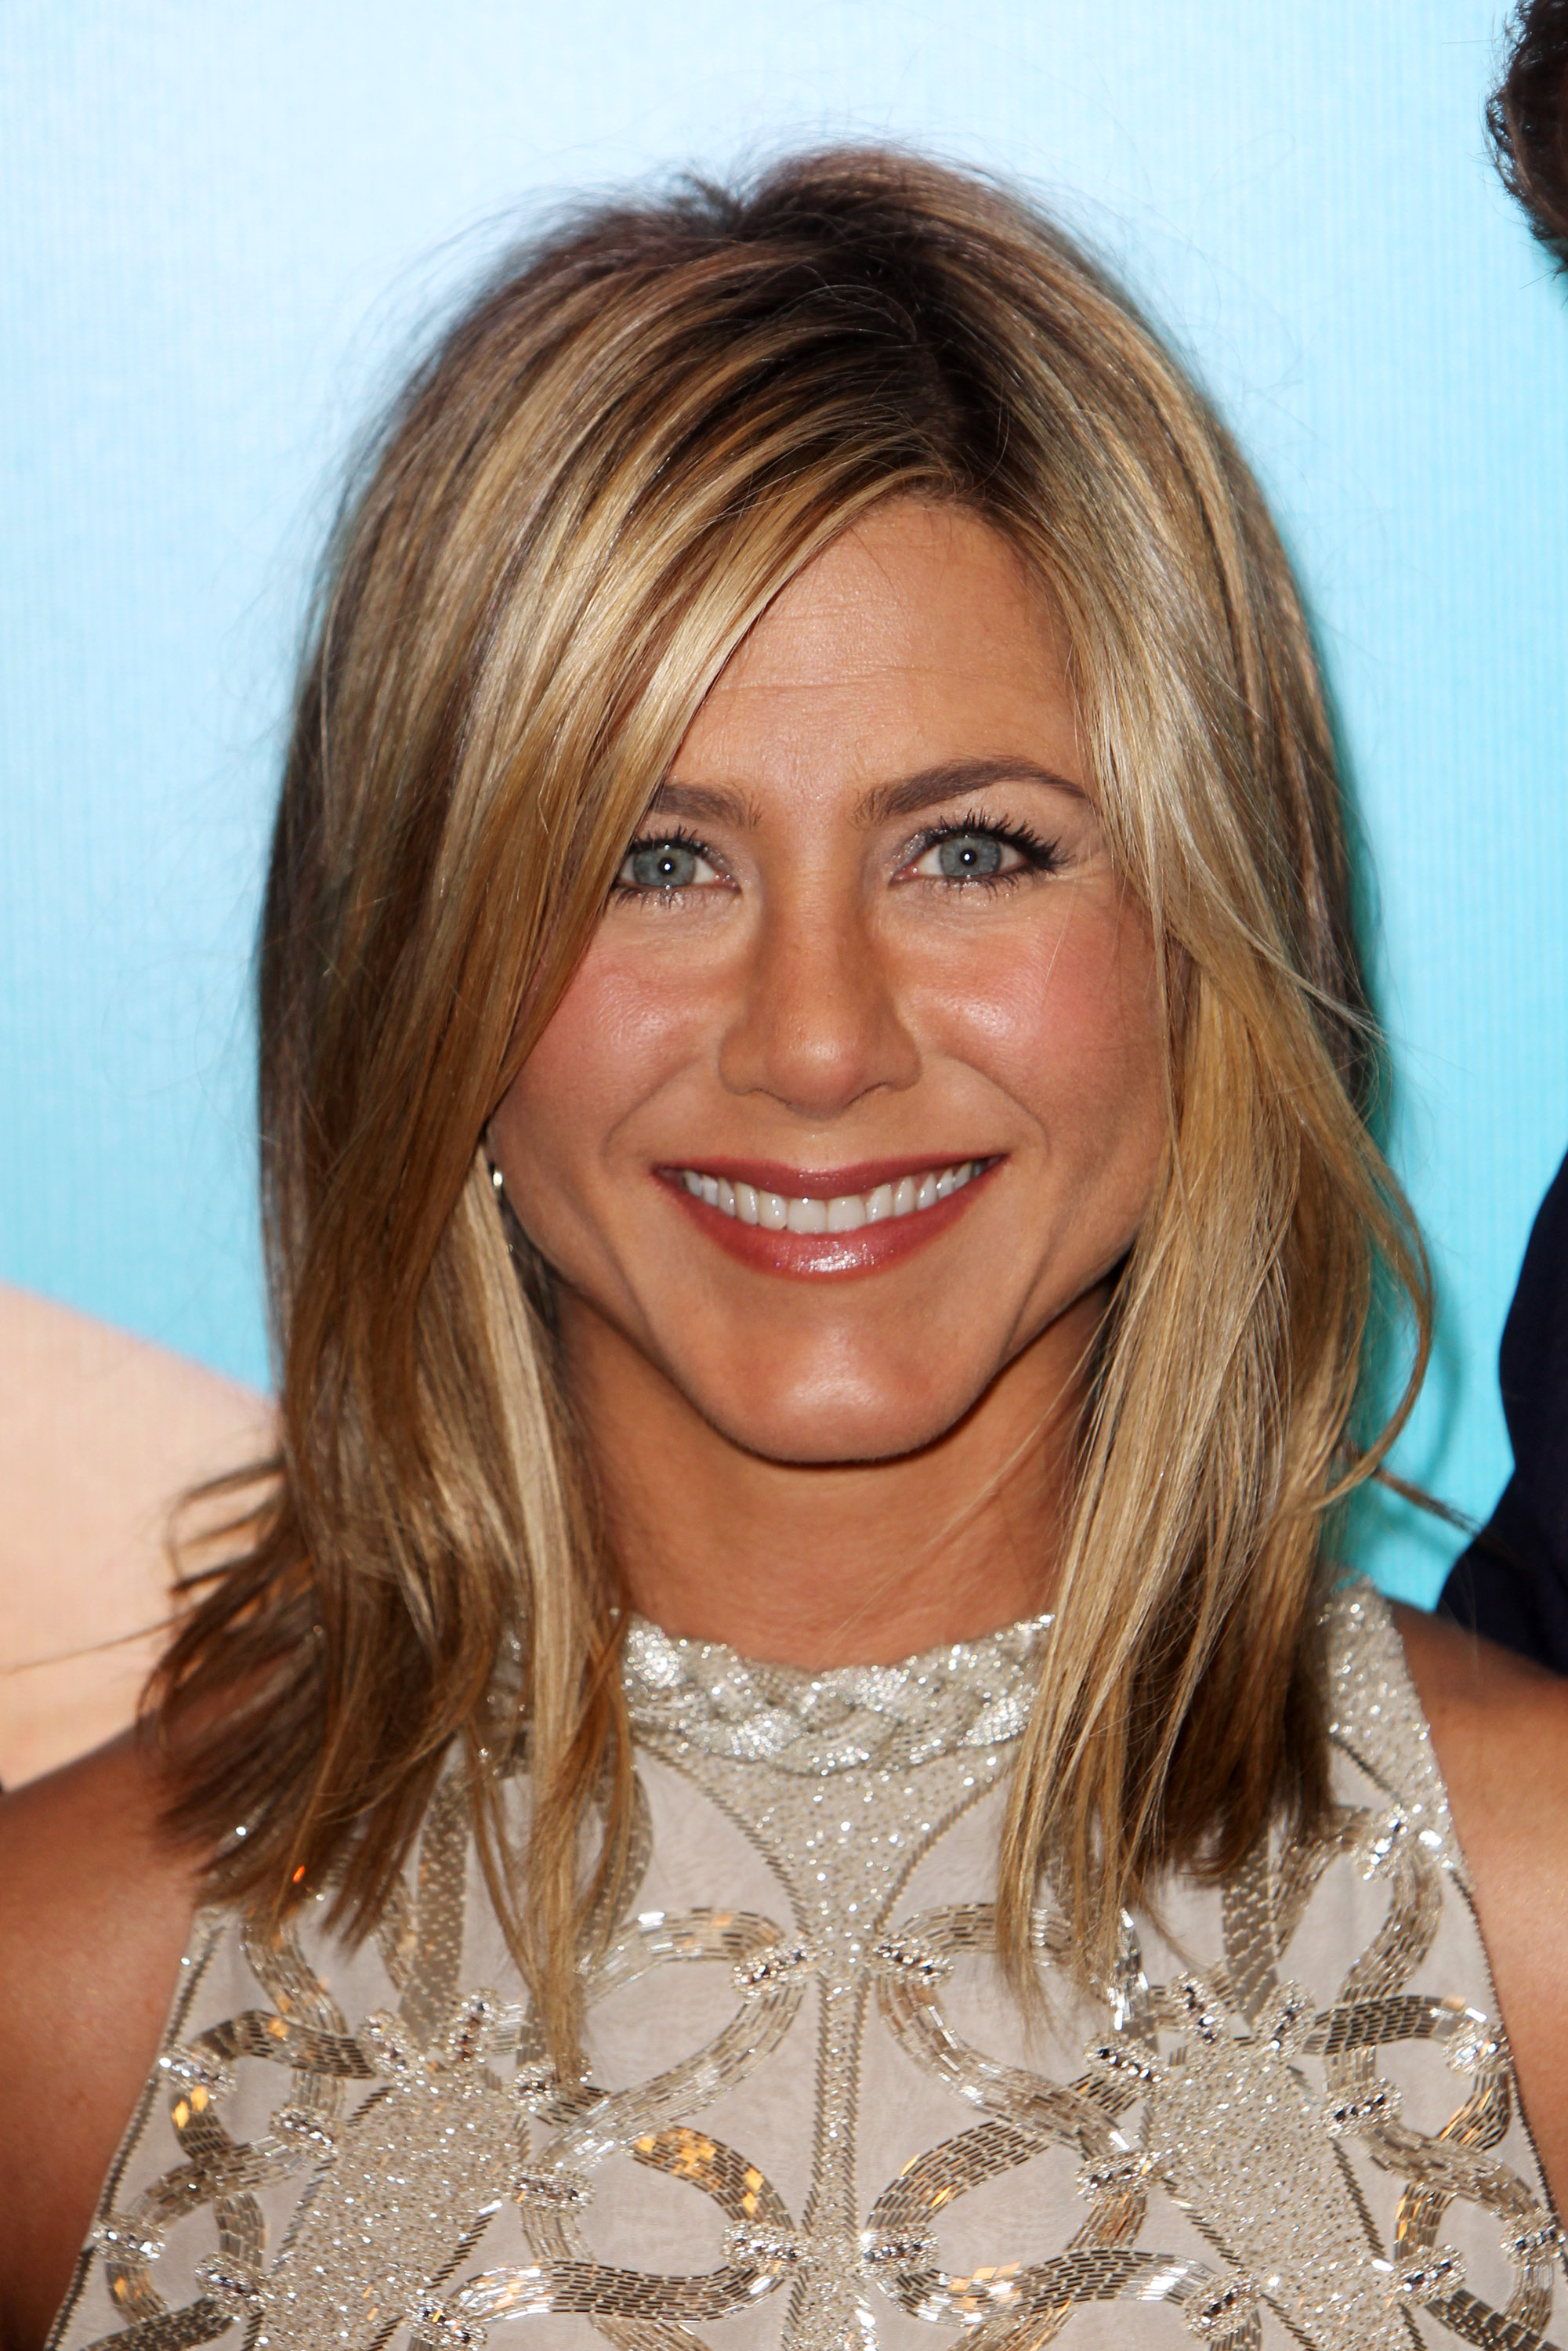 Jennifer Aniston Hair Evolution Timeline Of Jen Aniston's Hairstyles